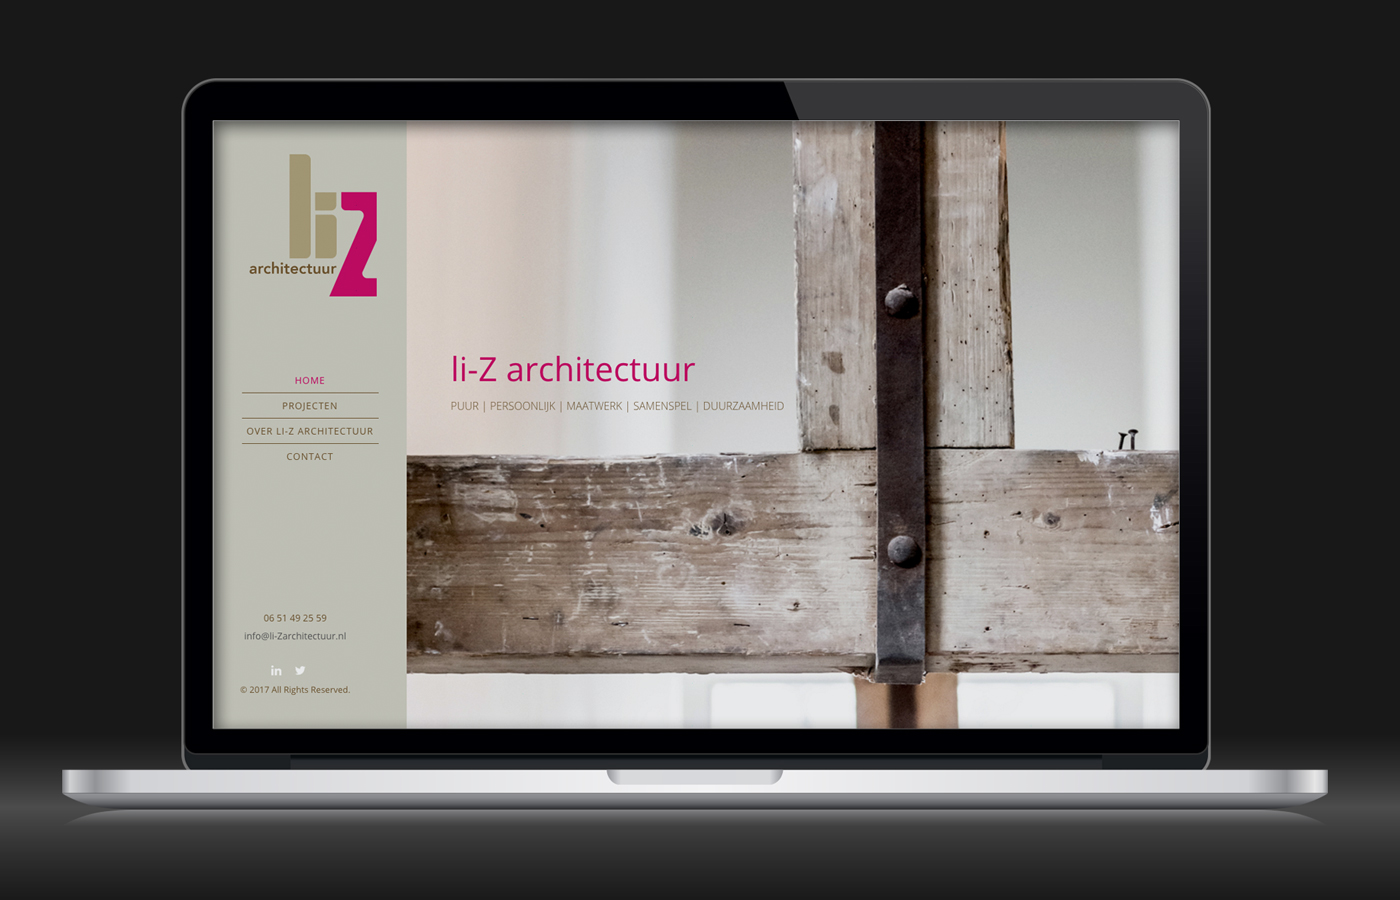 Website li-Z architectuur